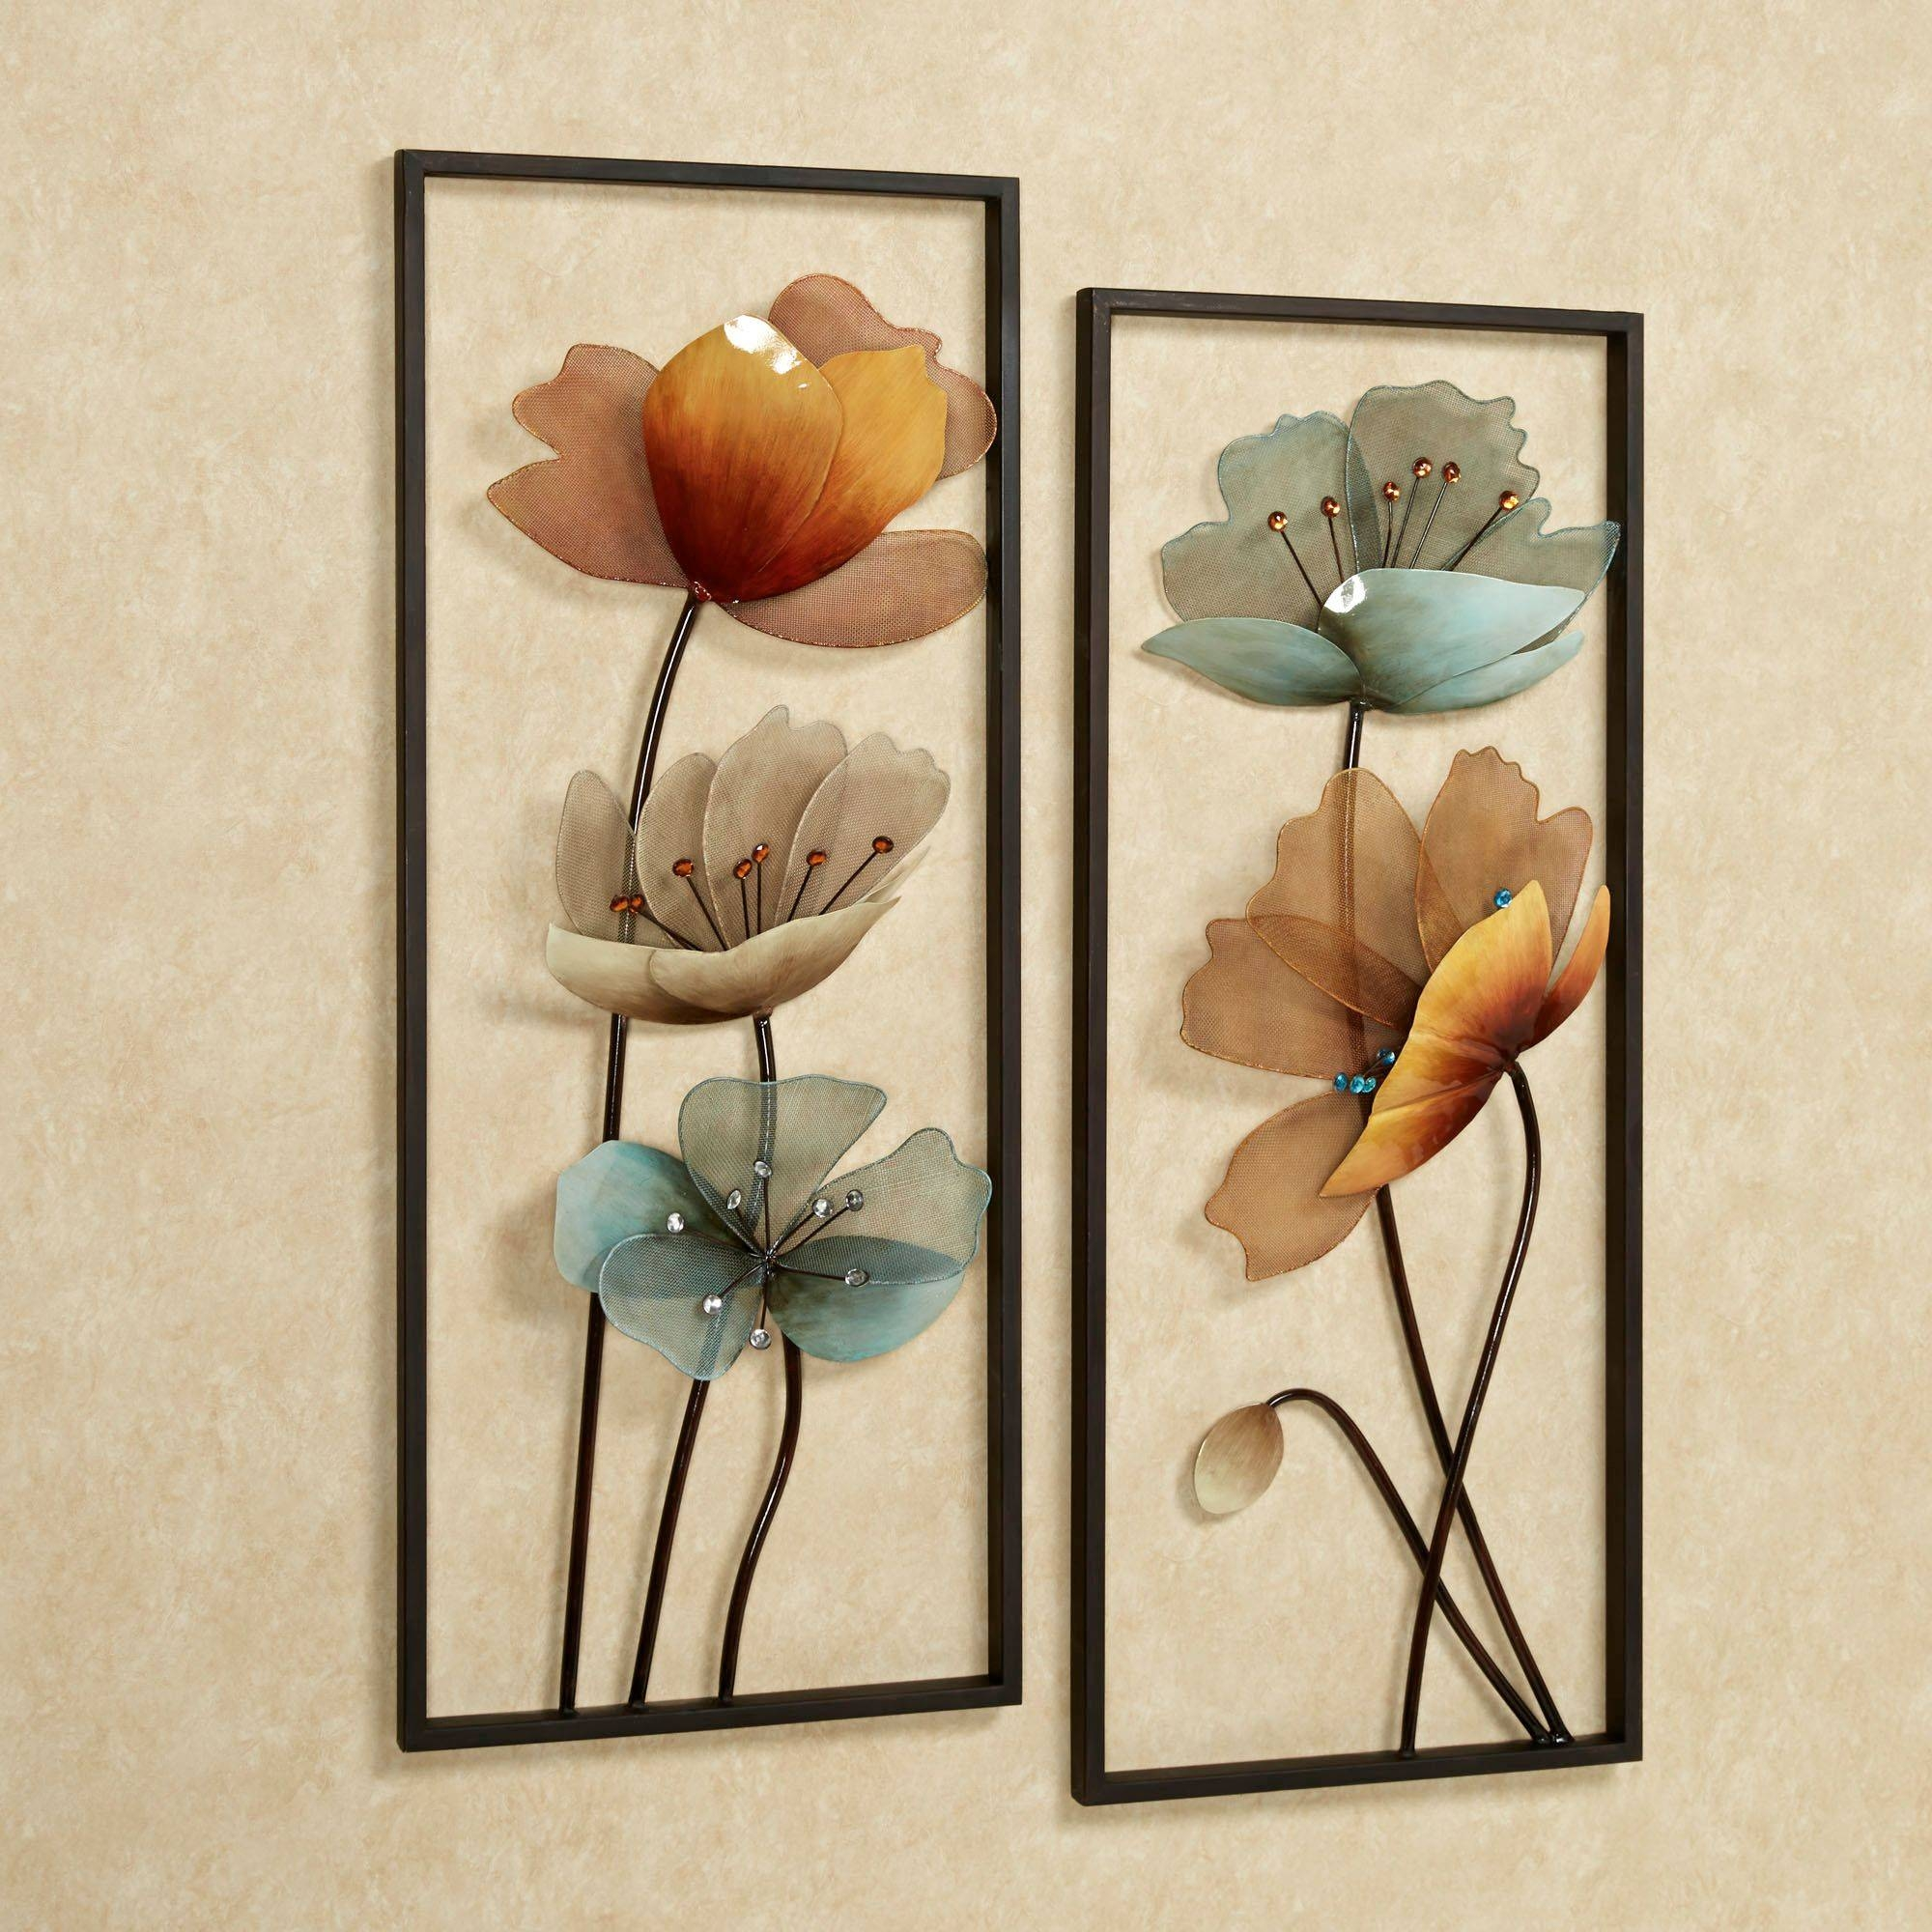 Modern Wrought Iron Wall Art : Unique Material Decorative Metal Pertaining To Best And Newest Metal Wall Artwork Decor (View 12 of 20)